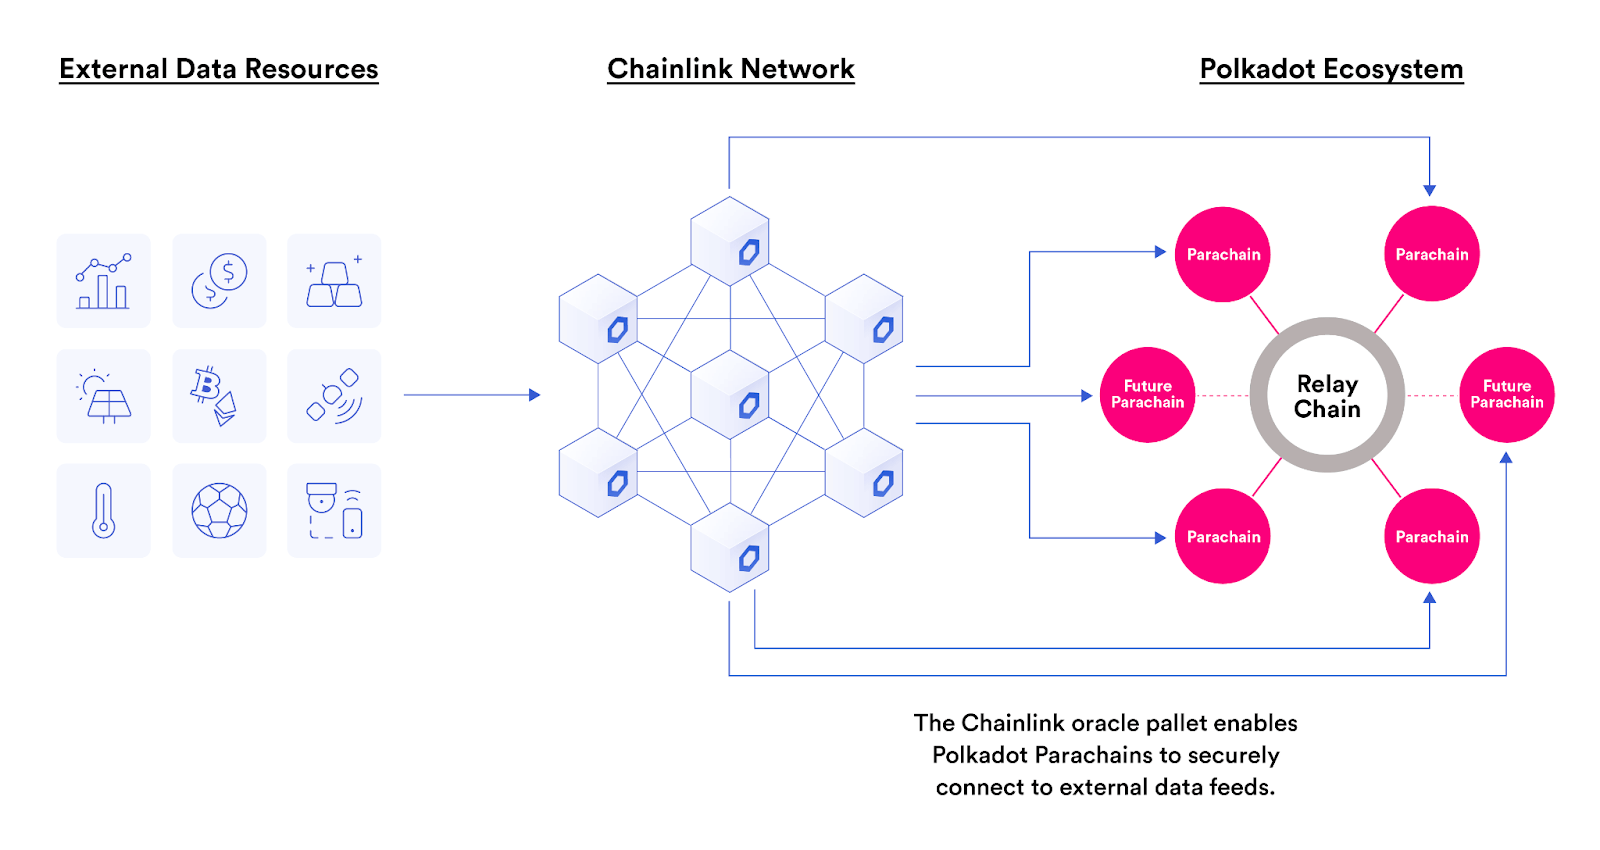 Chainlink's price oracles